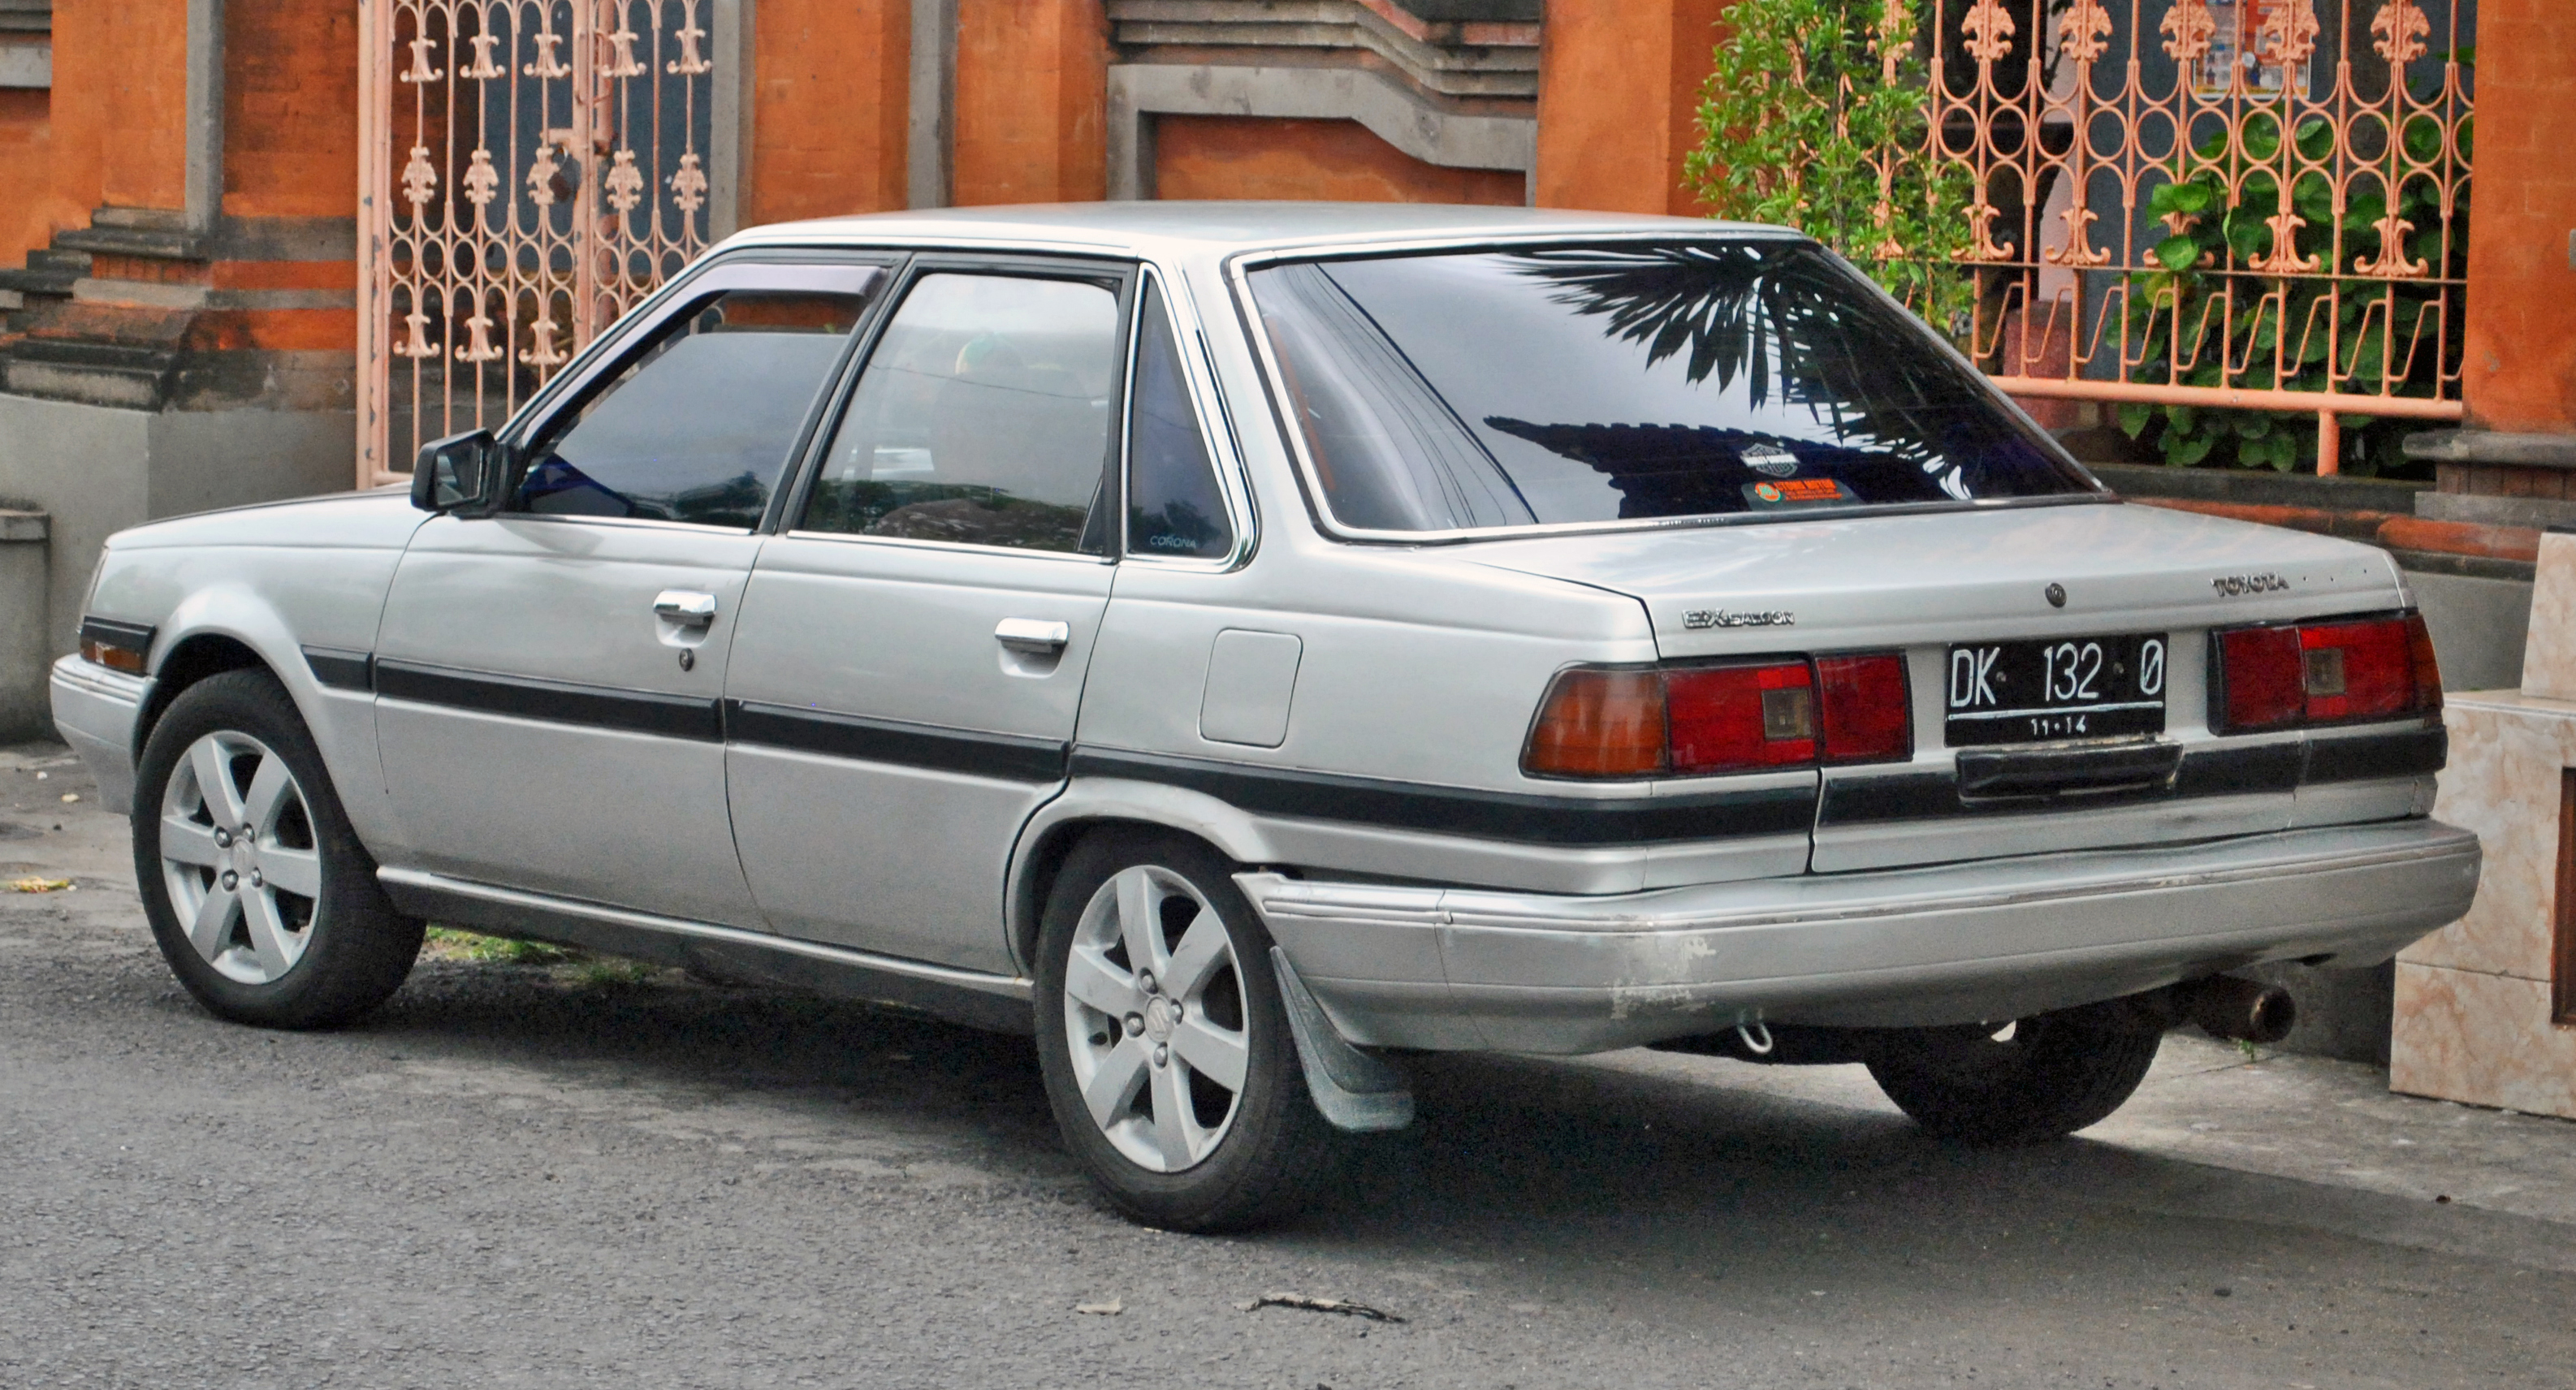 Charmant Corona EX Sedan (with Non Standard Wheels)